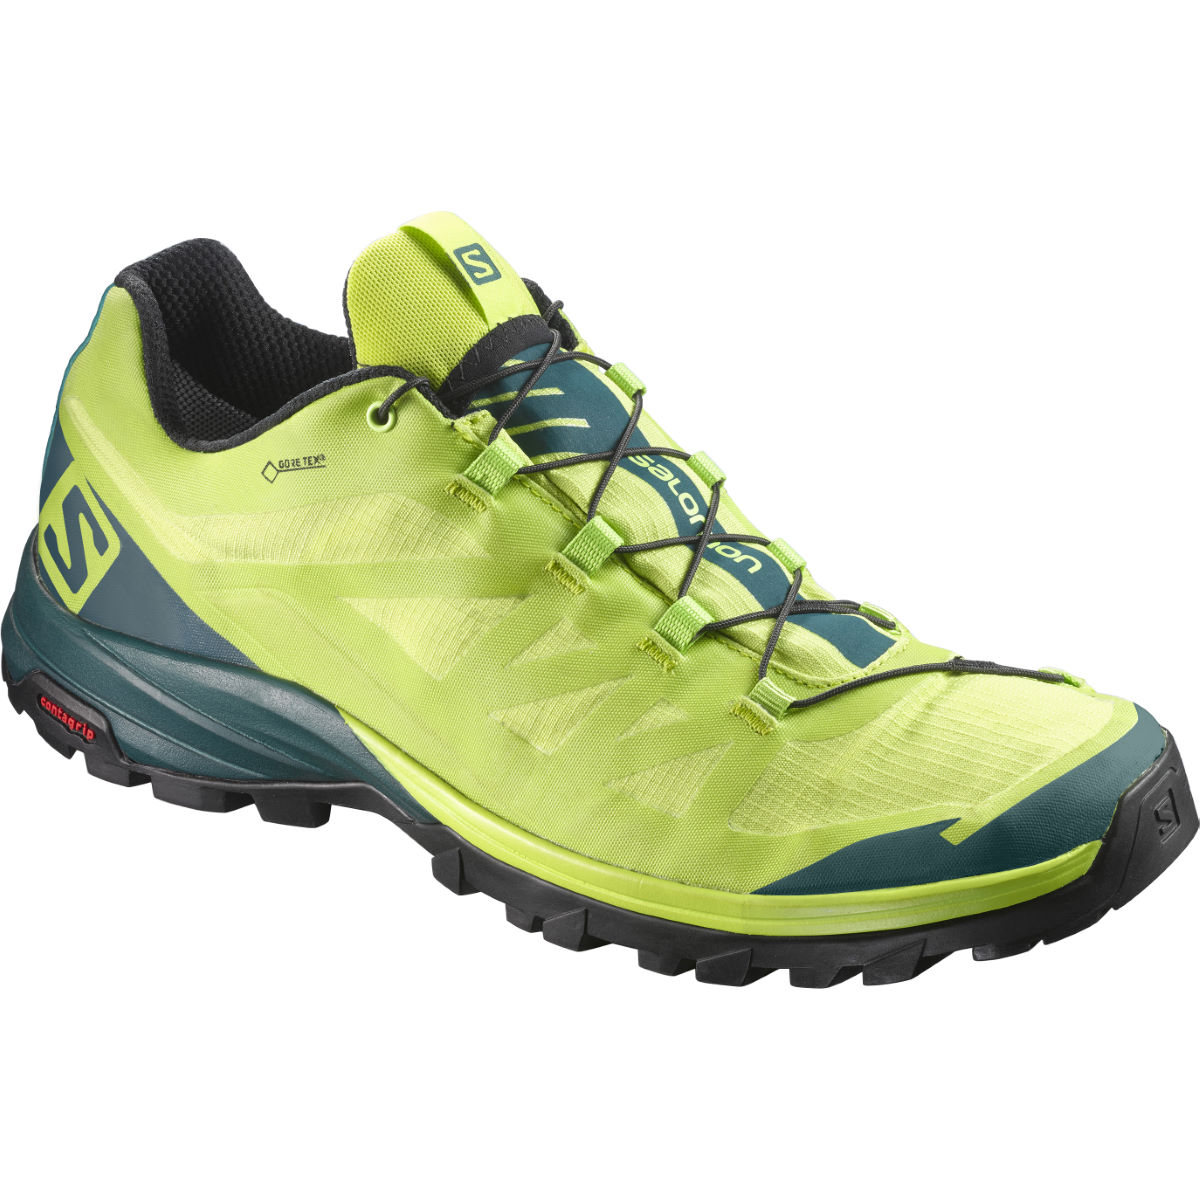 Outpath Gtx® - 9 Lime Punc/Reflecting | Fast Hike